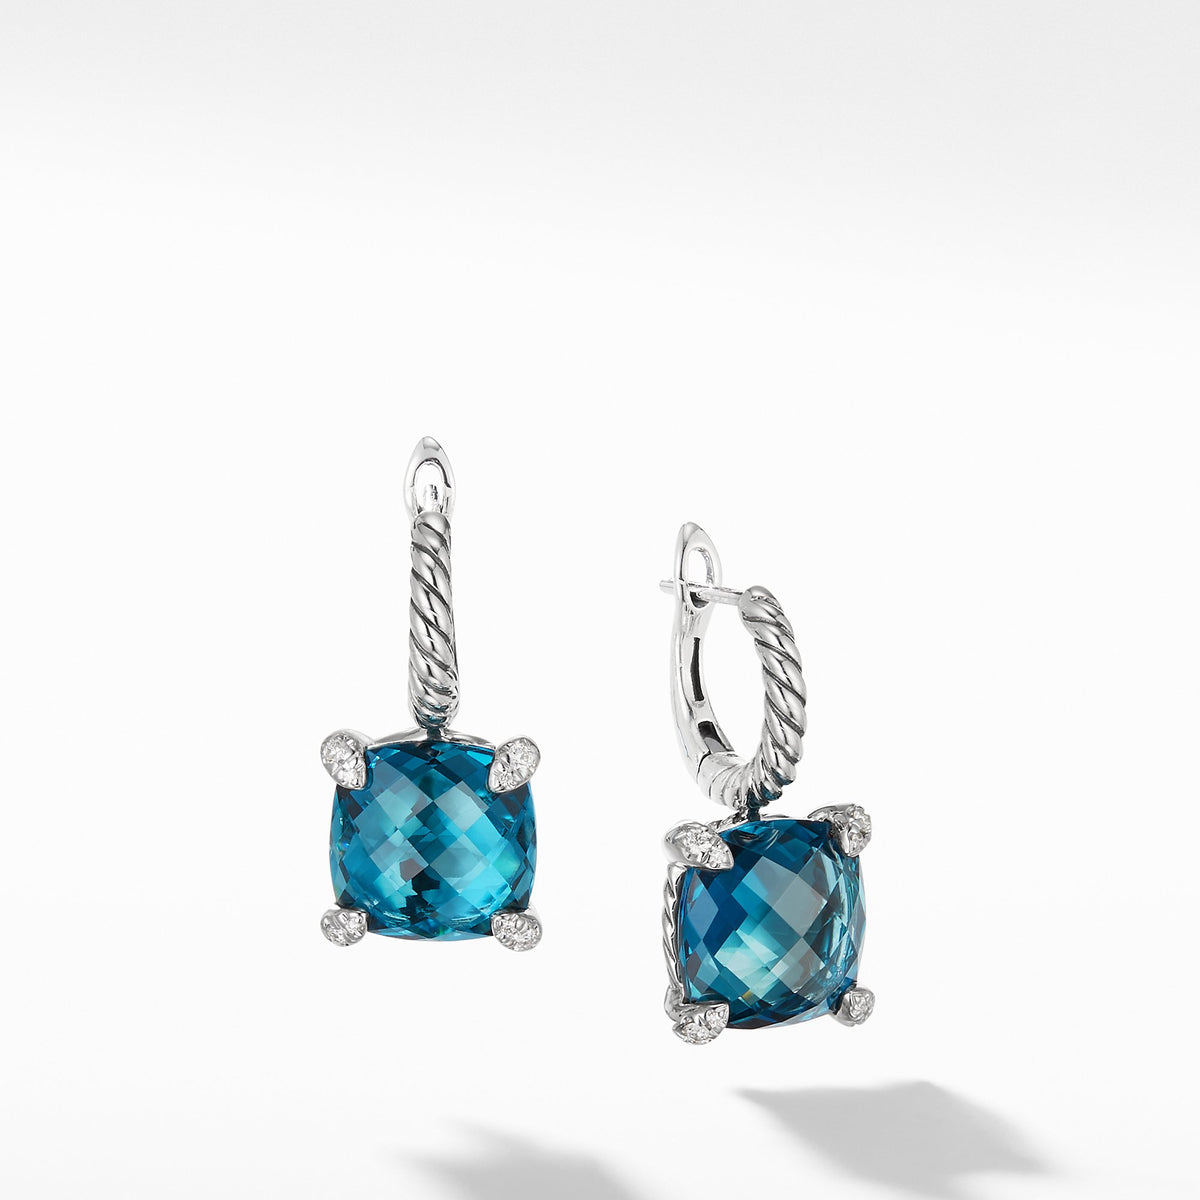 Drop Earrings with Hampton Blue Topaz and Diamonds